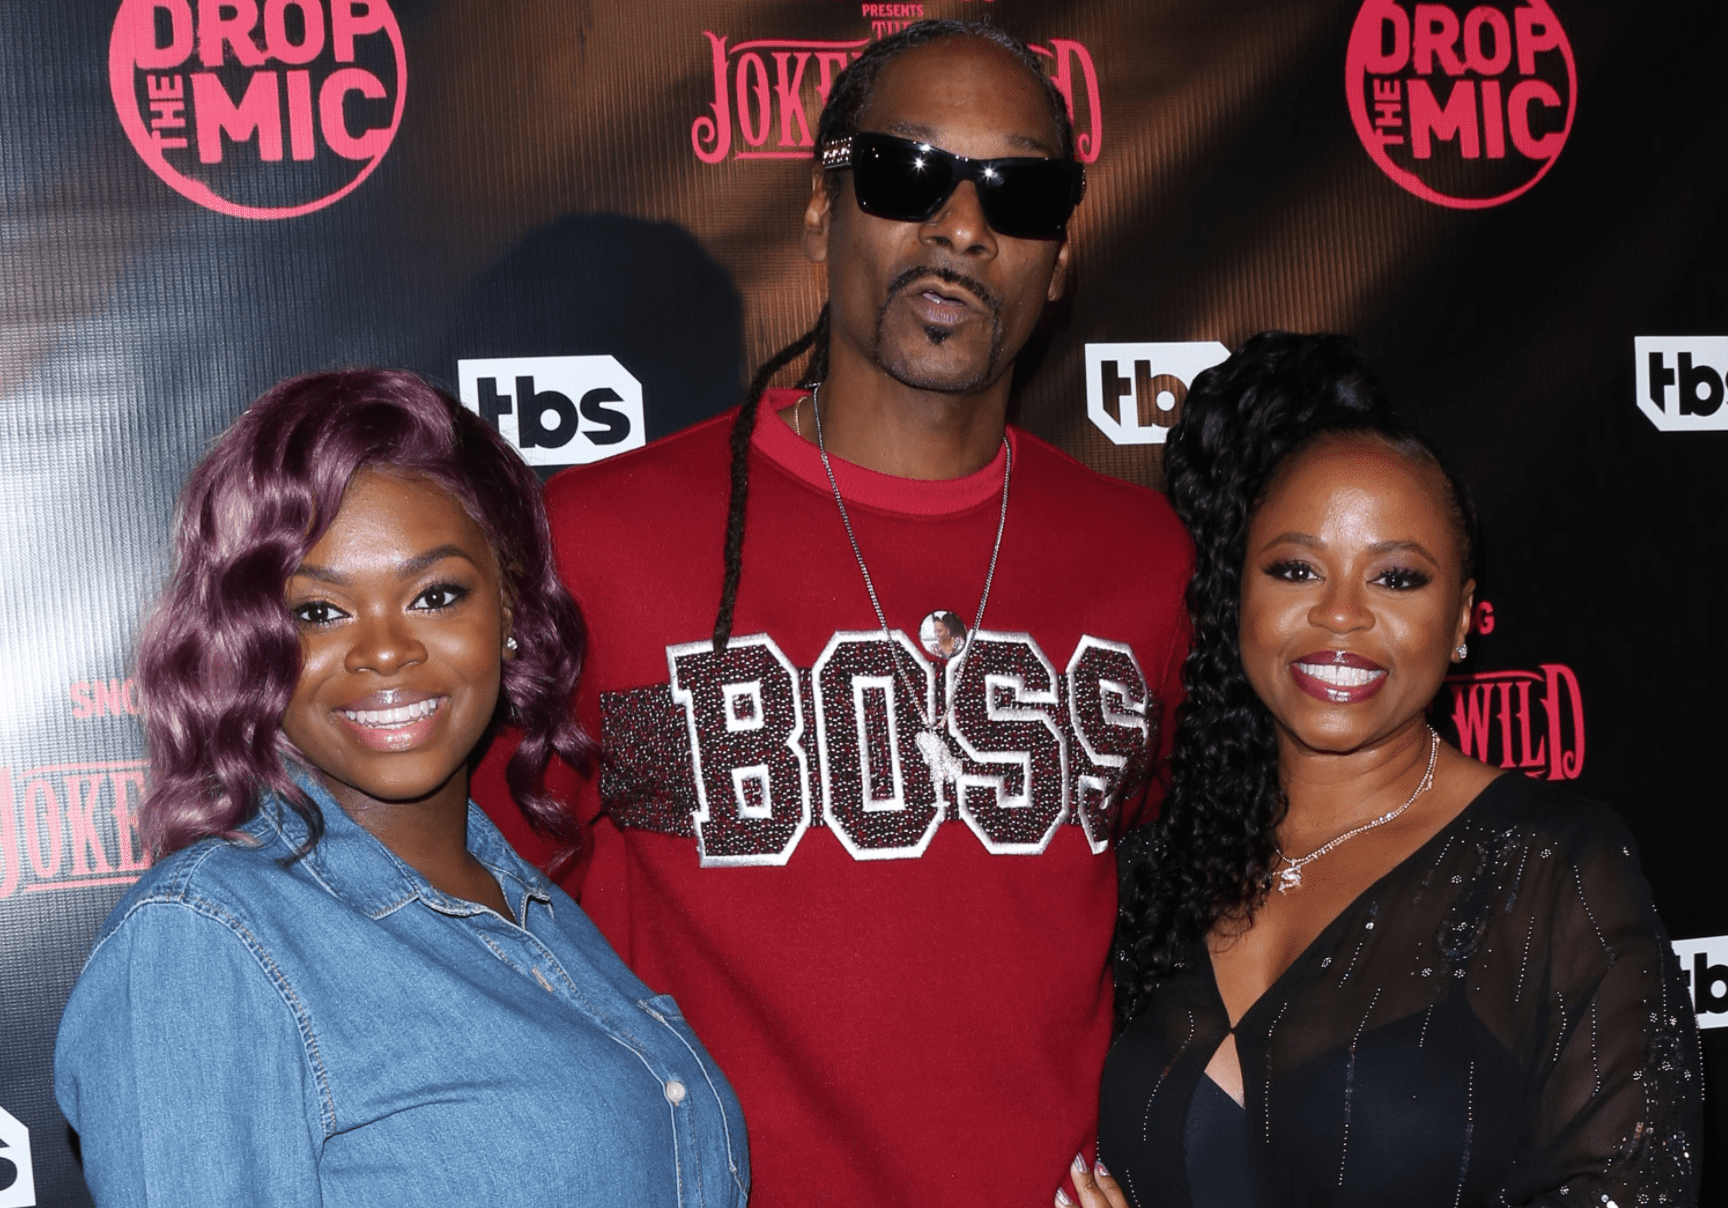 """Cori Broadus, Snoop Dogg, and Shante Broadus at the premiere for TBS's """"Drop The Mic"""" in 2017 in Los Angeles.   Source: Getty Images"""